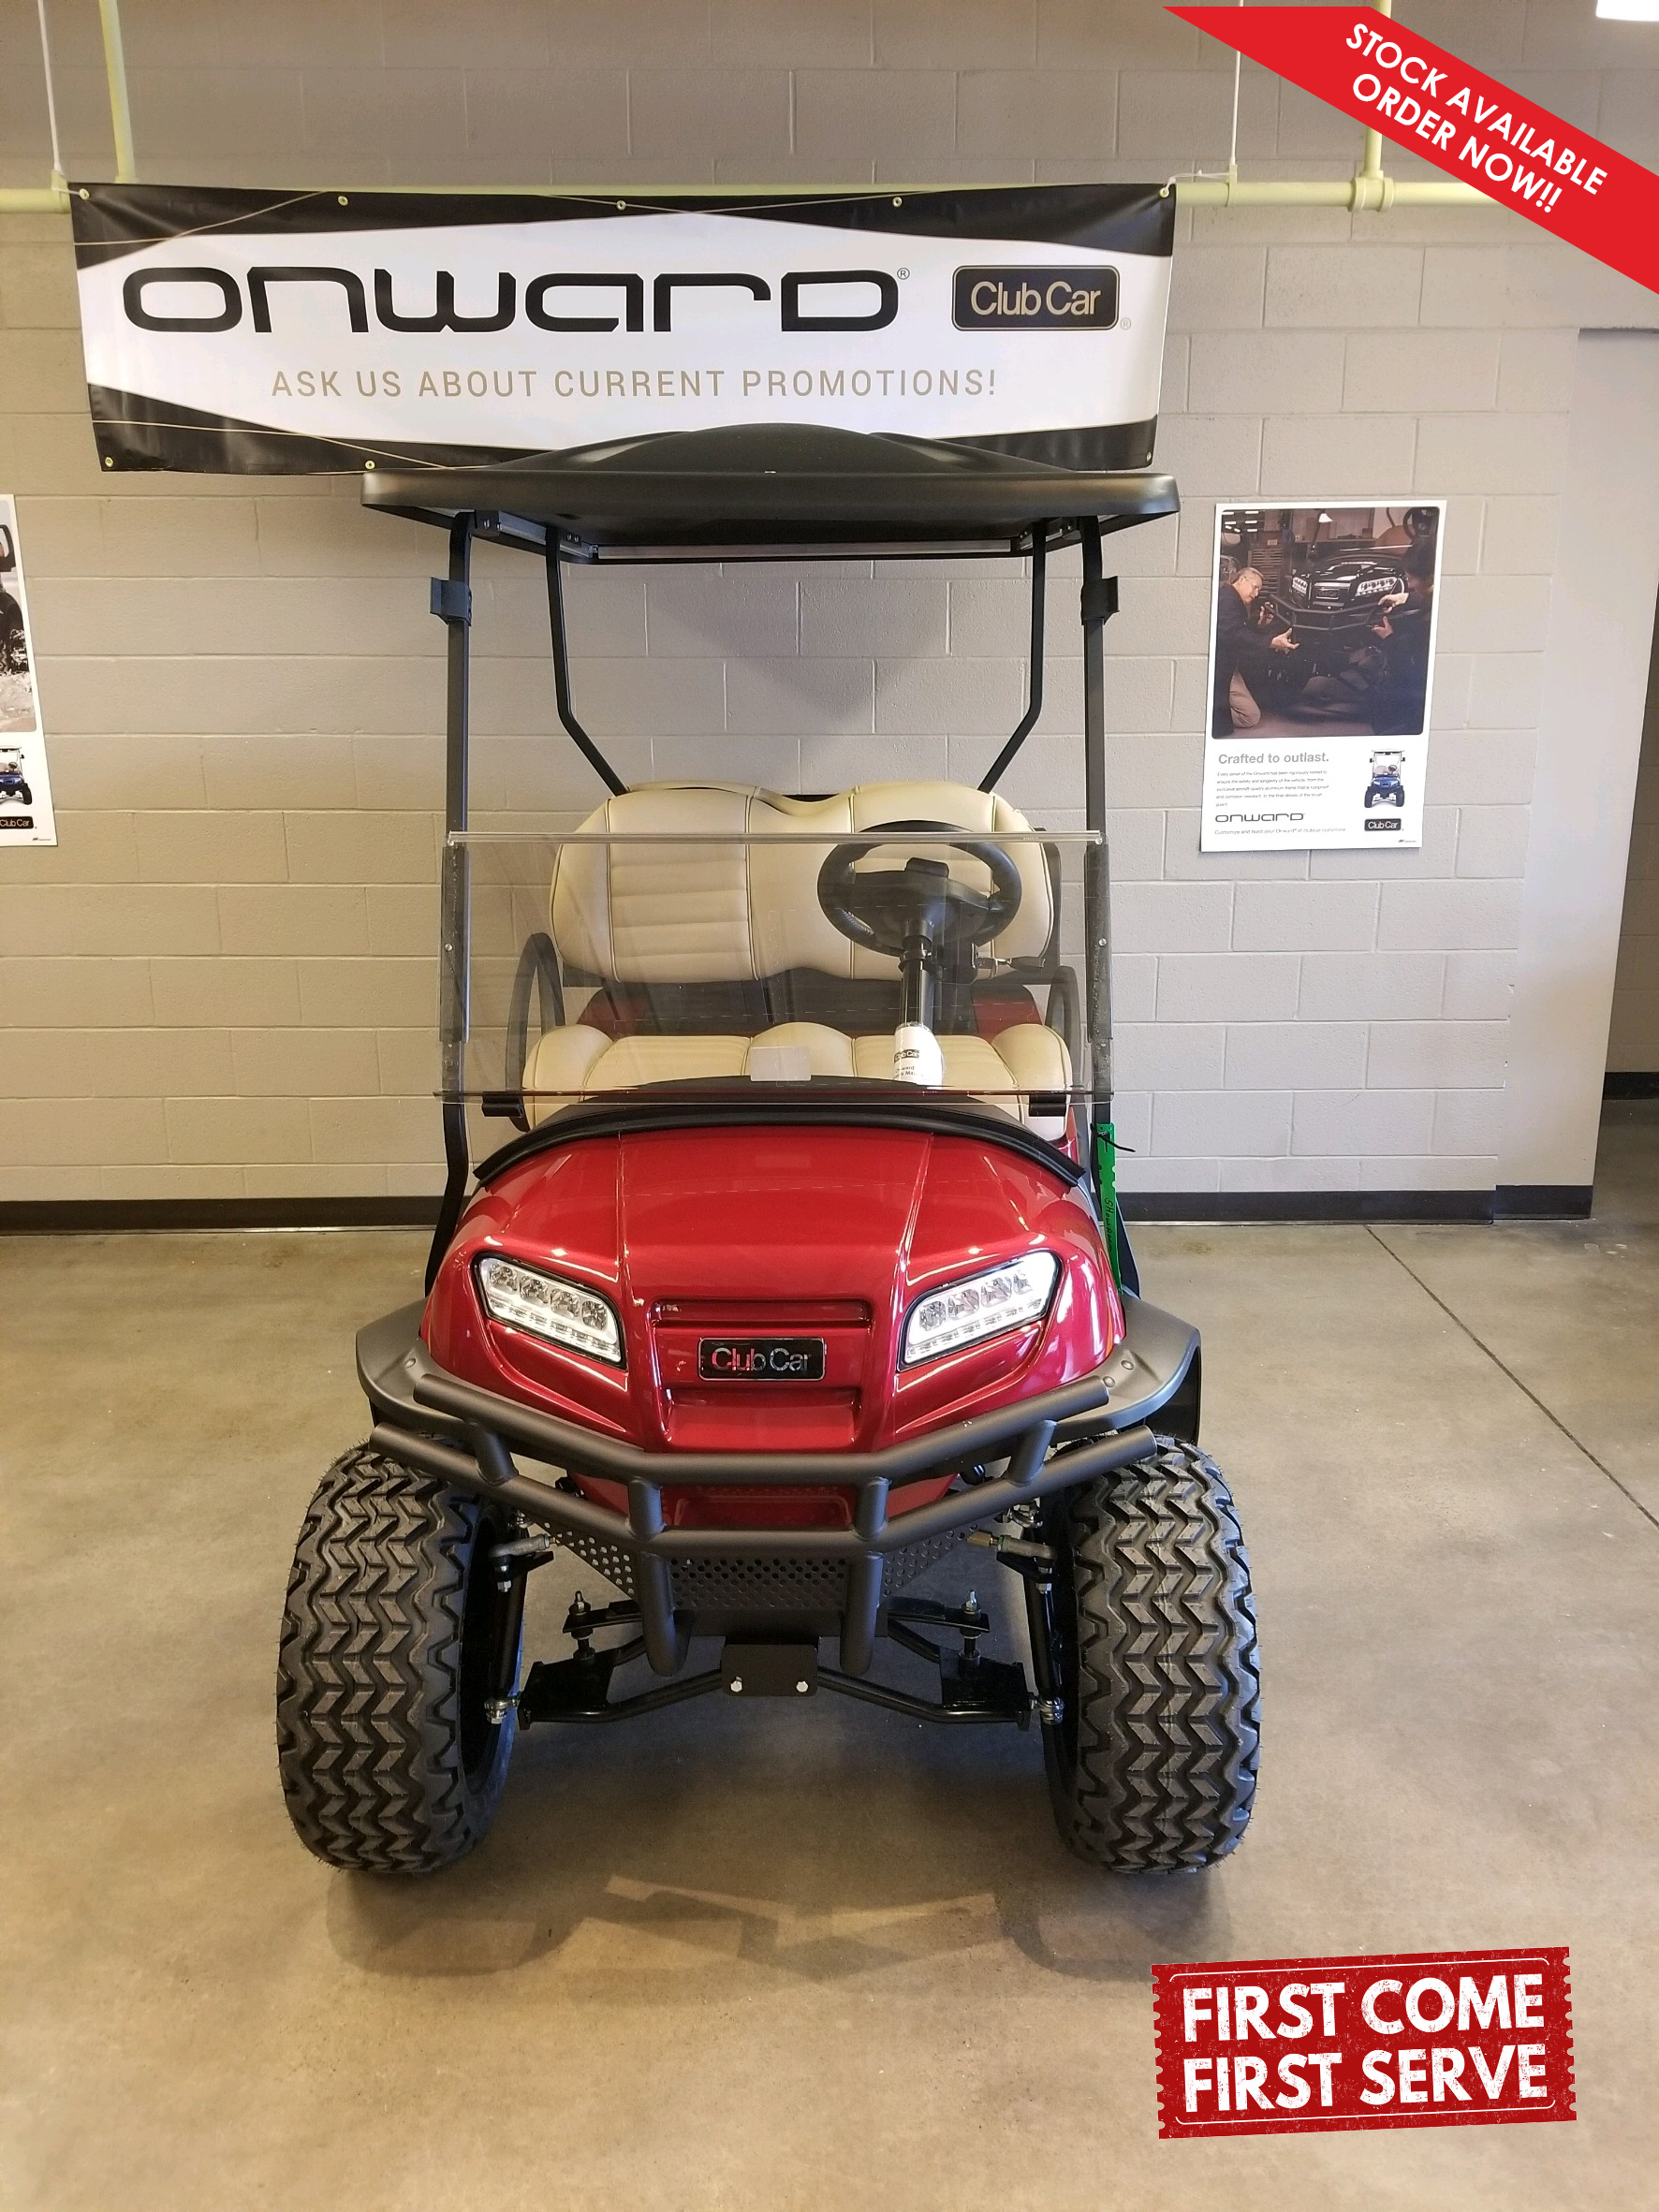 2021 Club Car Onward Lifted 4 Passenger HP Electric Lithium Ion Post Thumbnail